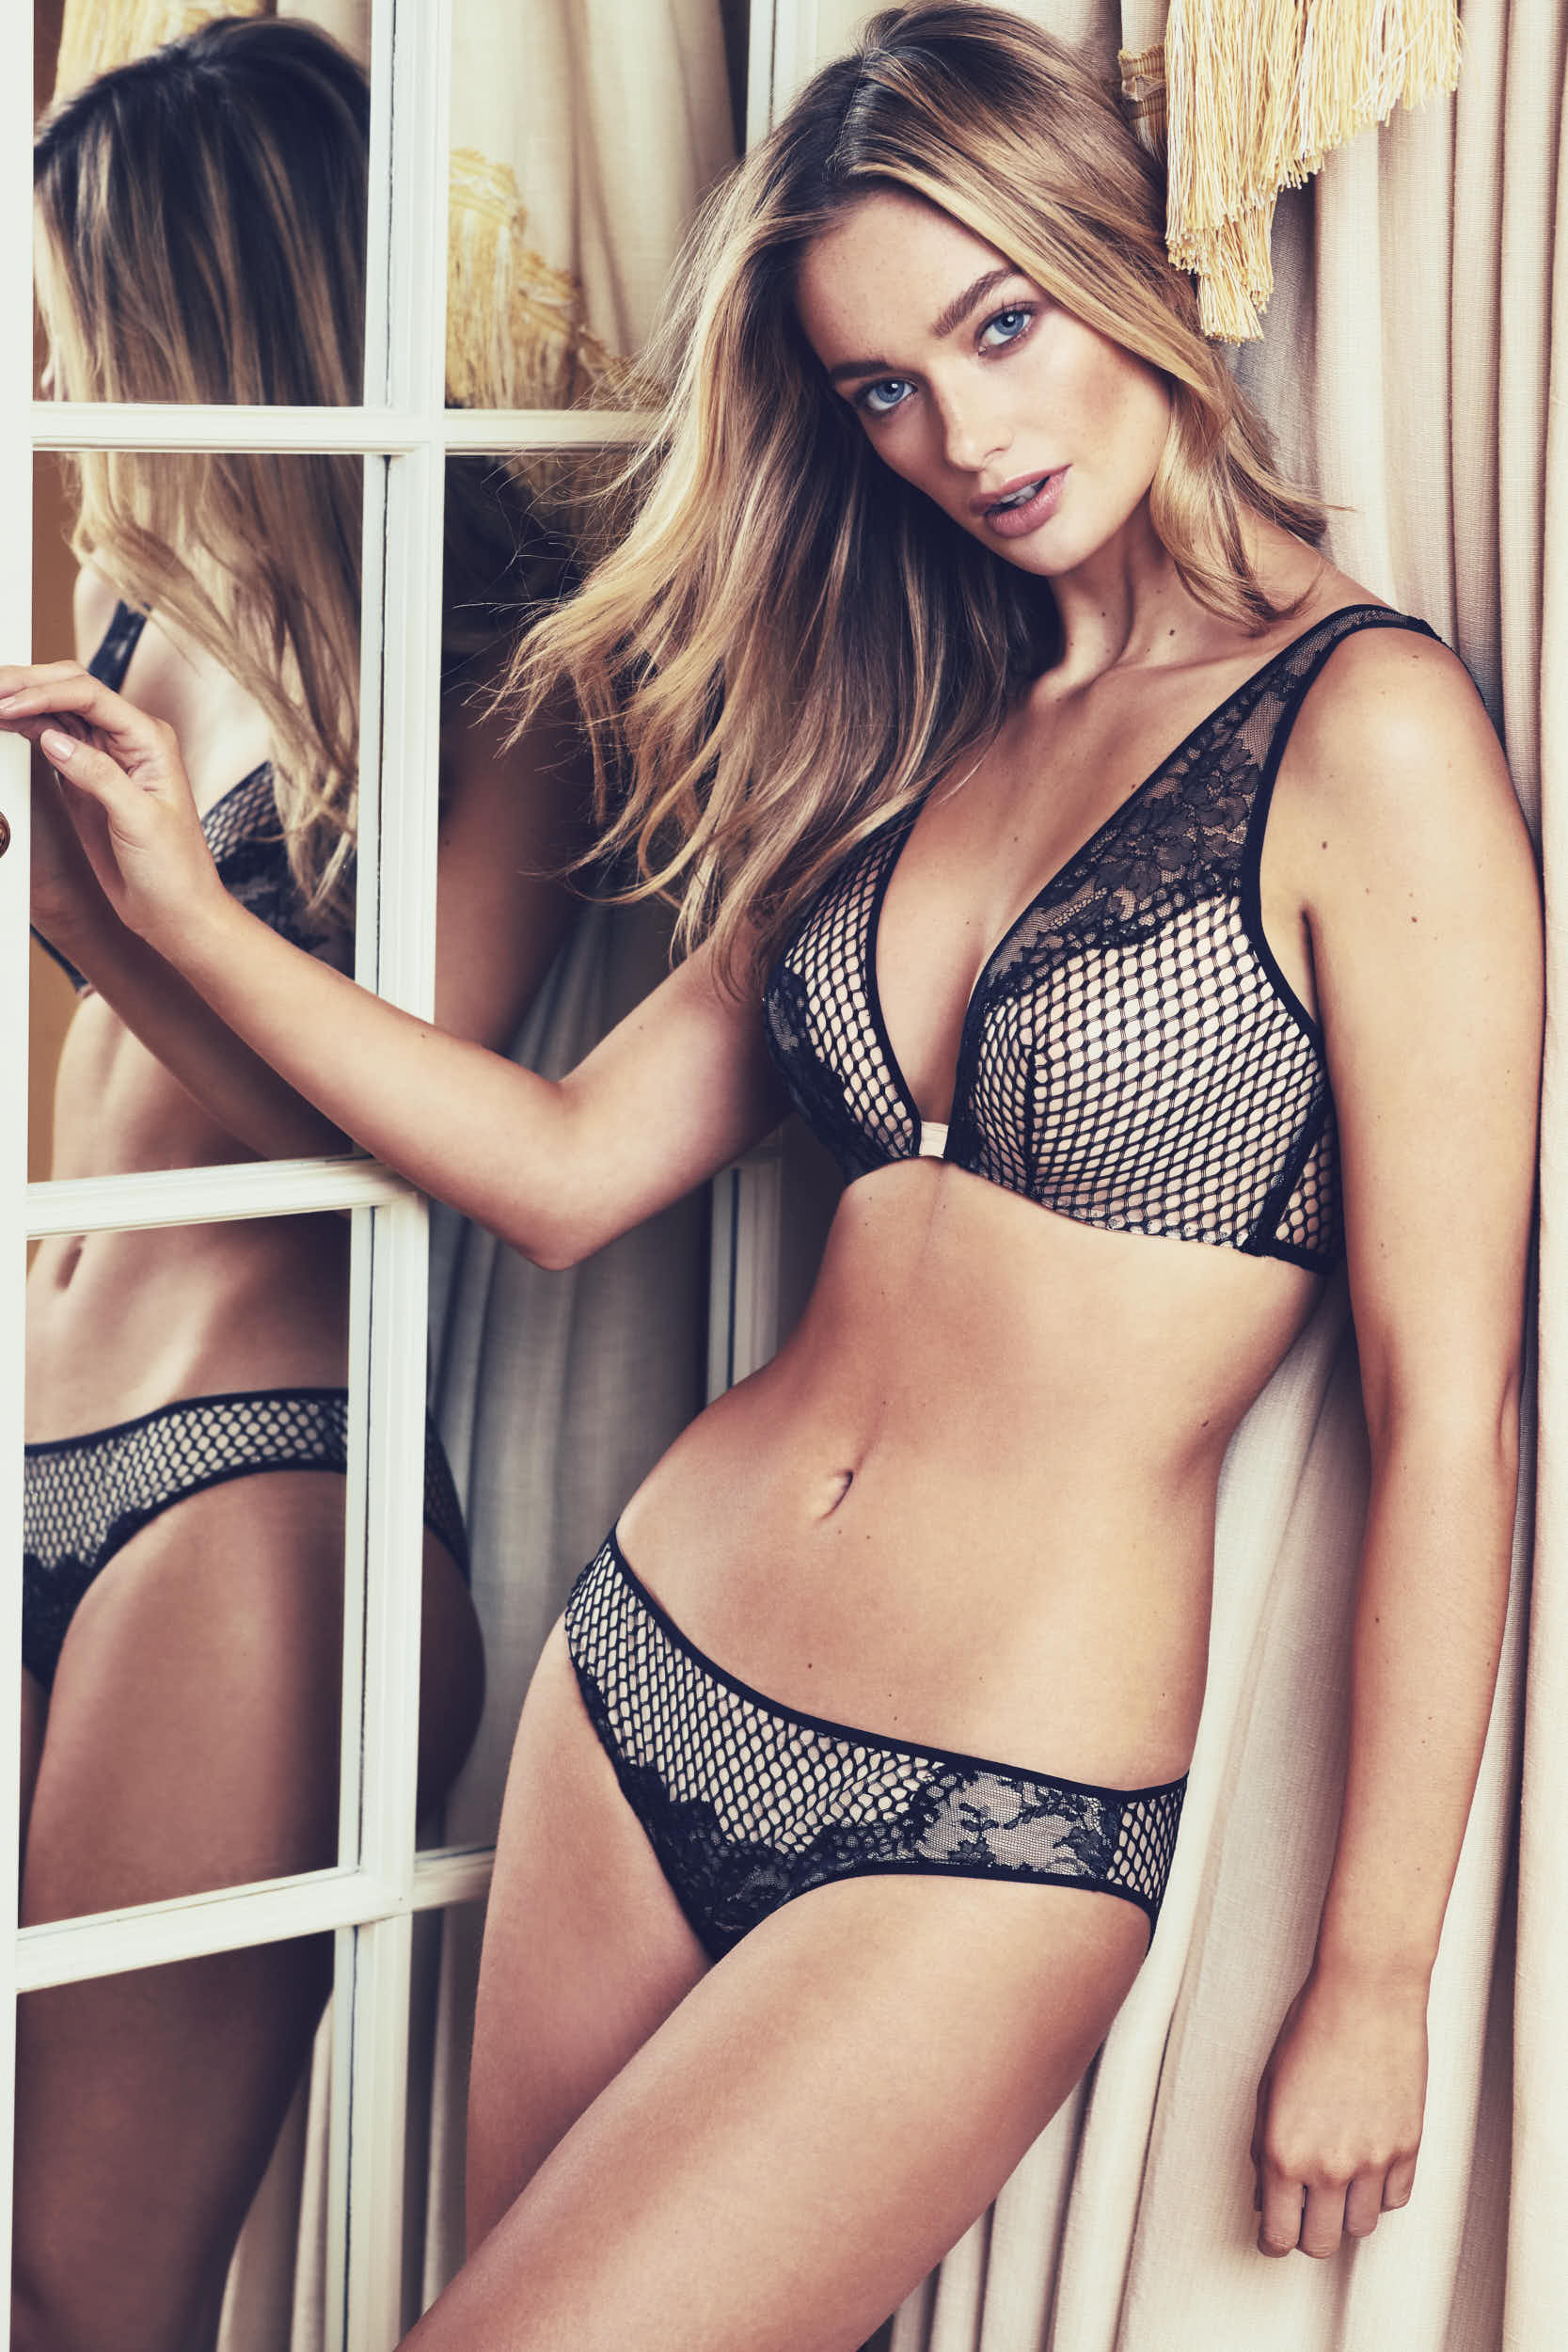 Brown_Thomas_Lingerie_04WebSite.jpg